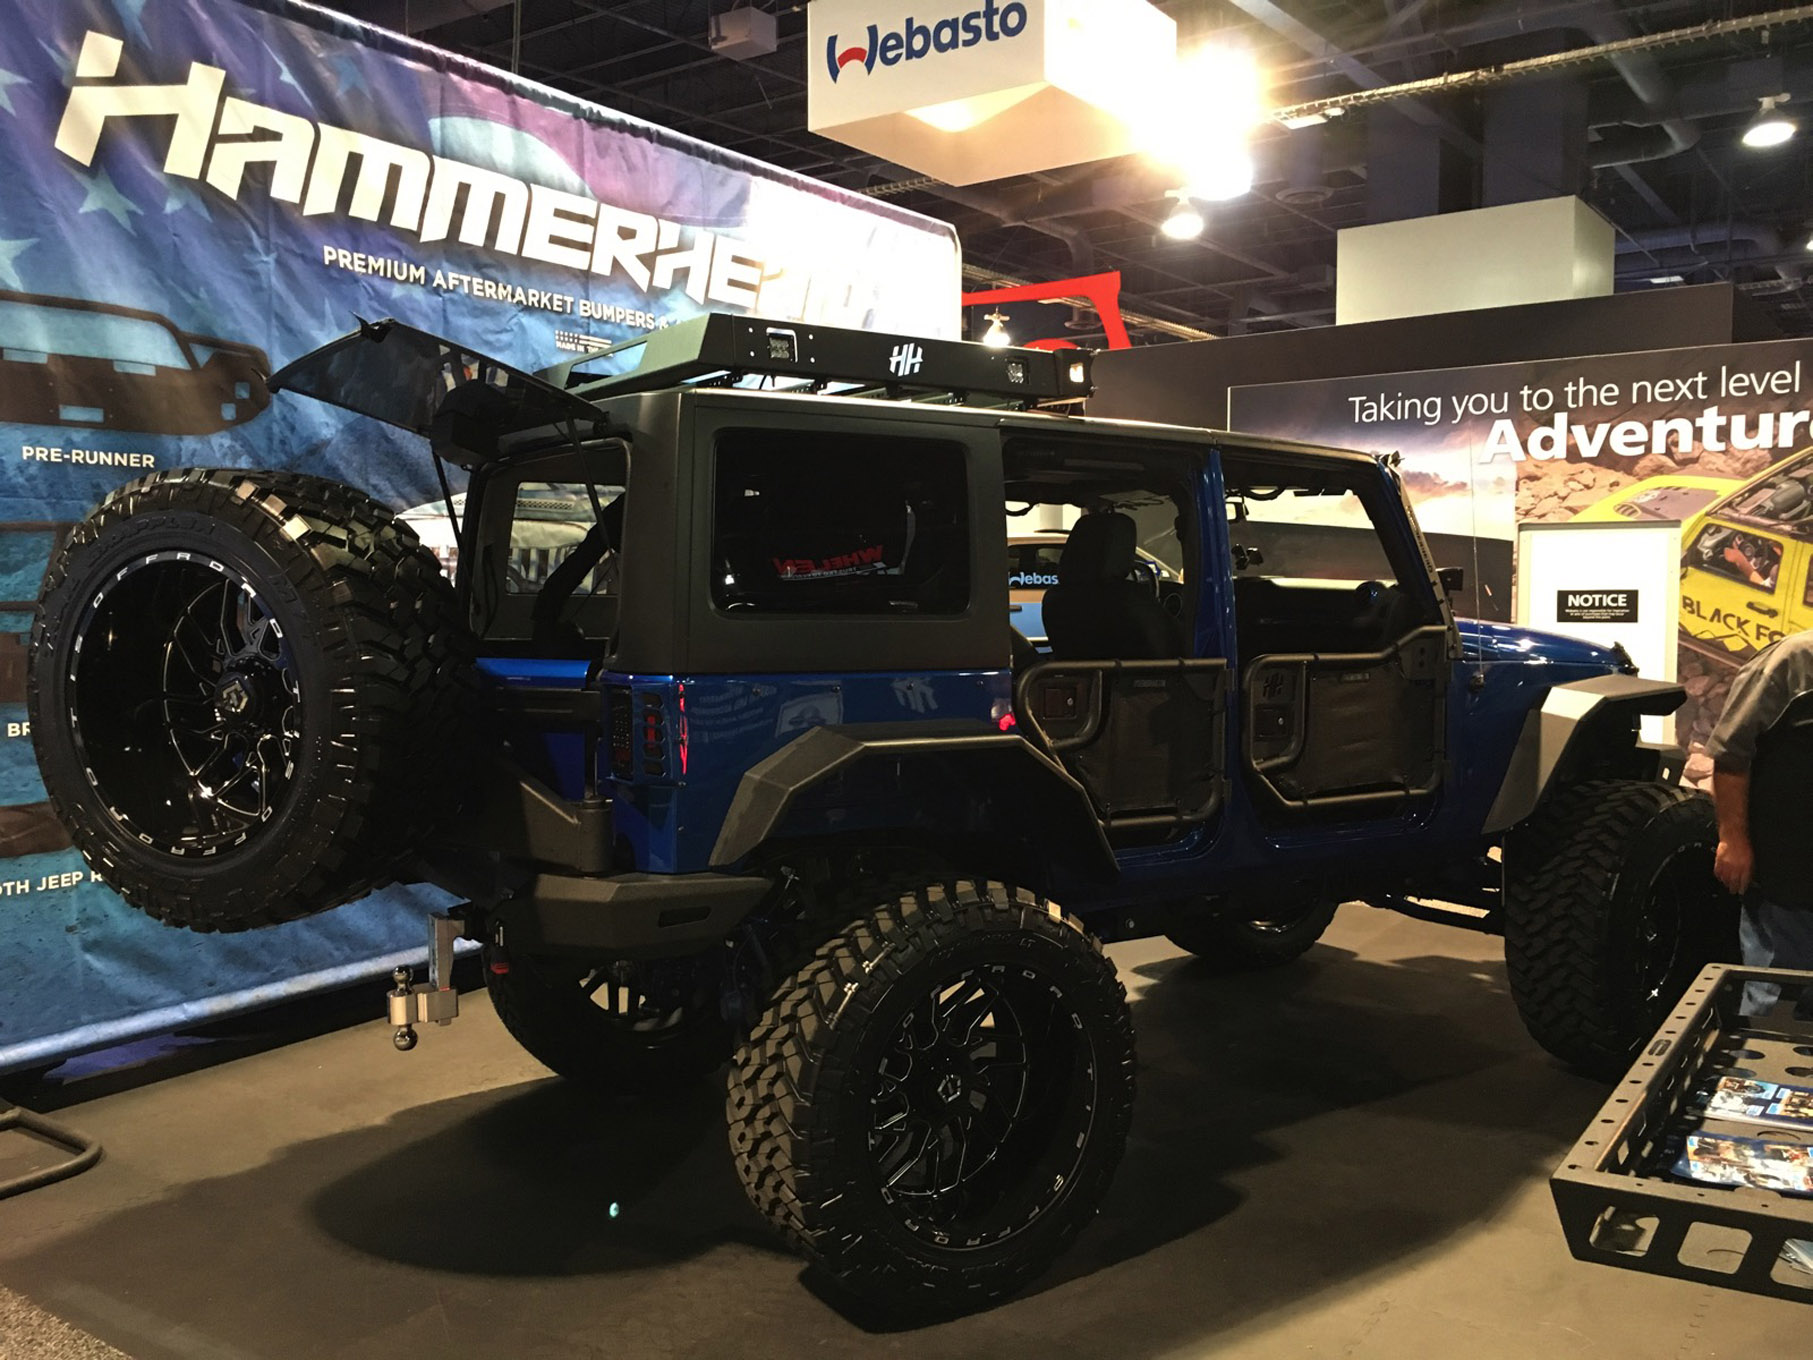 015 sema 2017 day 1 south upper hall gallery photos